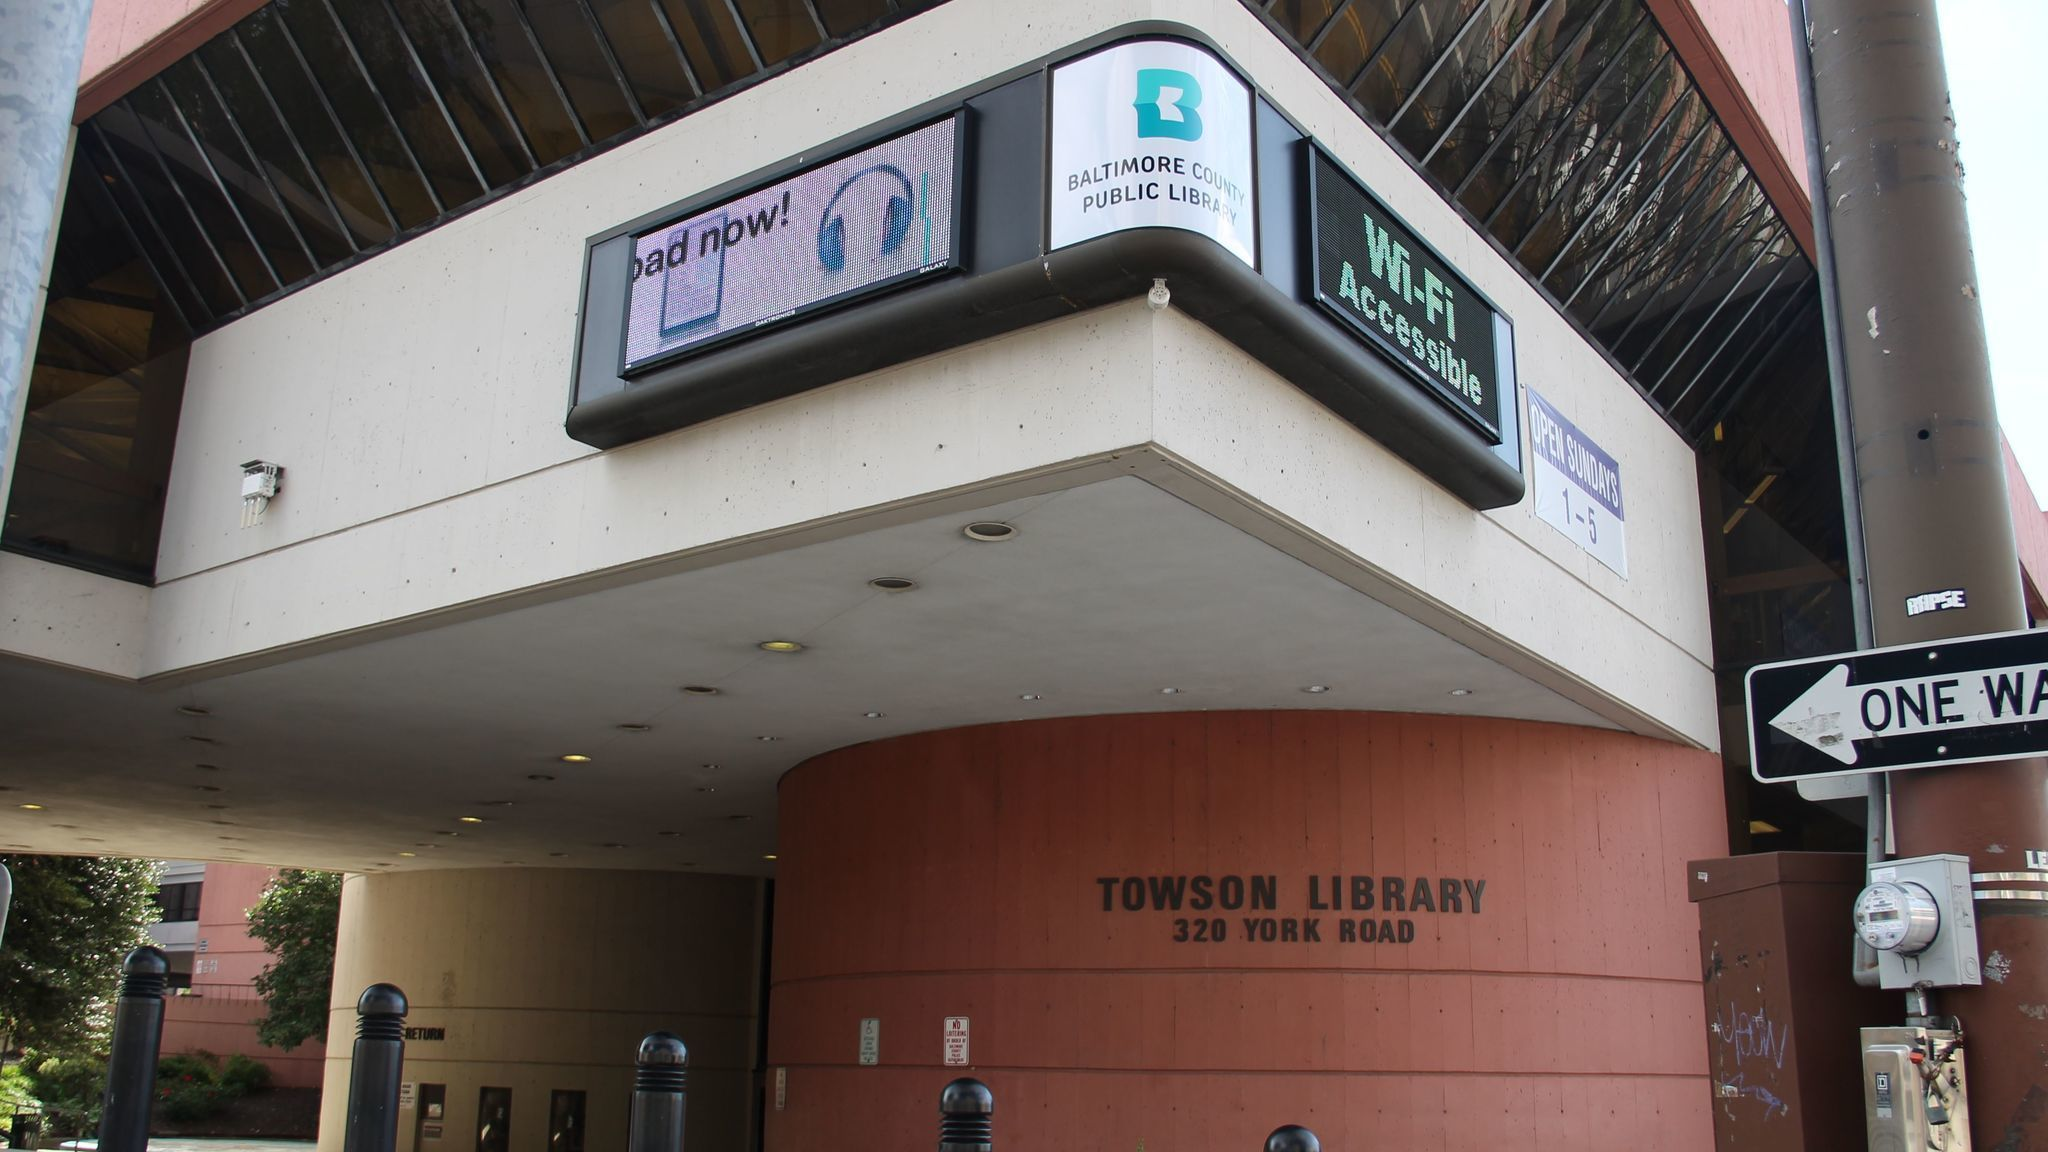 Towson Library Getting New Roof But Keeping Regular Hours